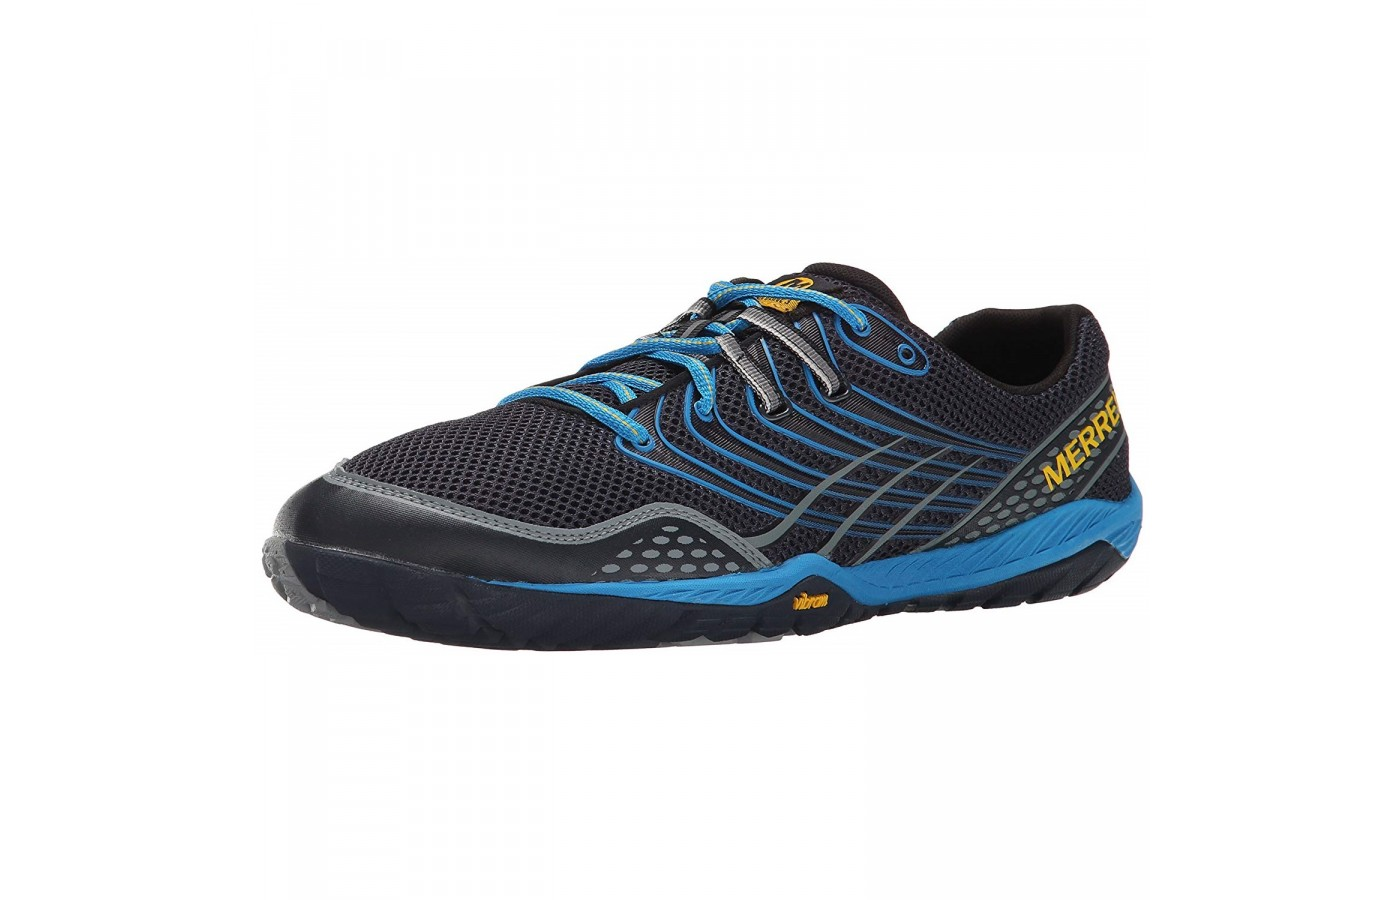 The Merrell Trail Glove 3 offers mesh and synthetic upper material for a cooler, more ventilated run.